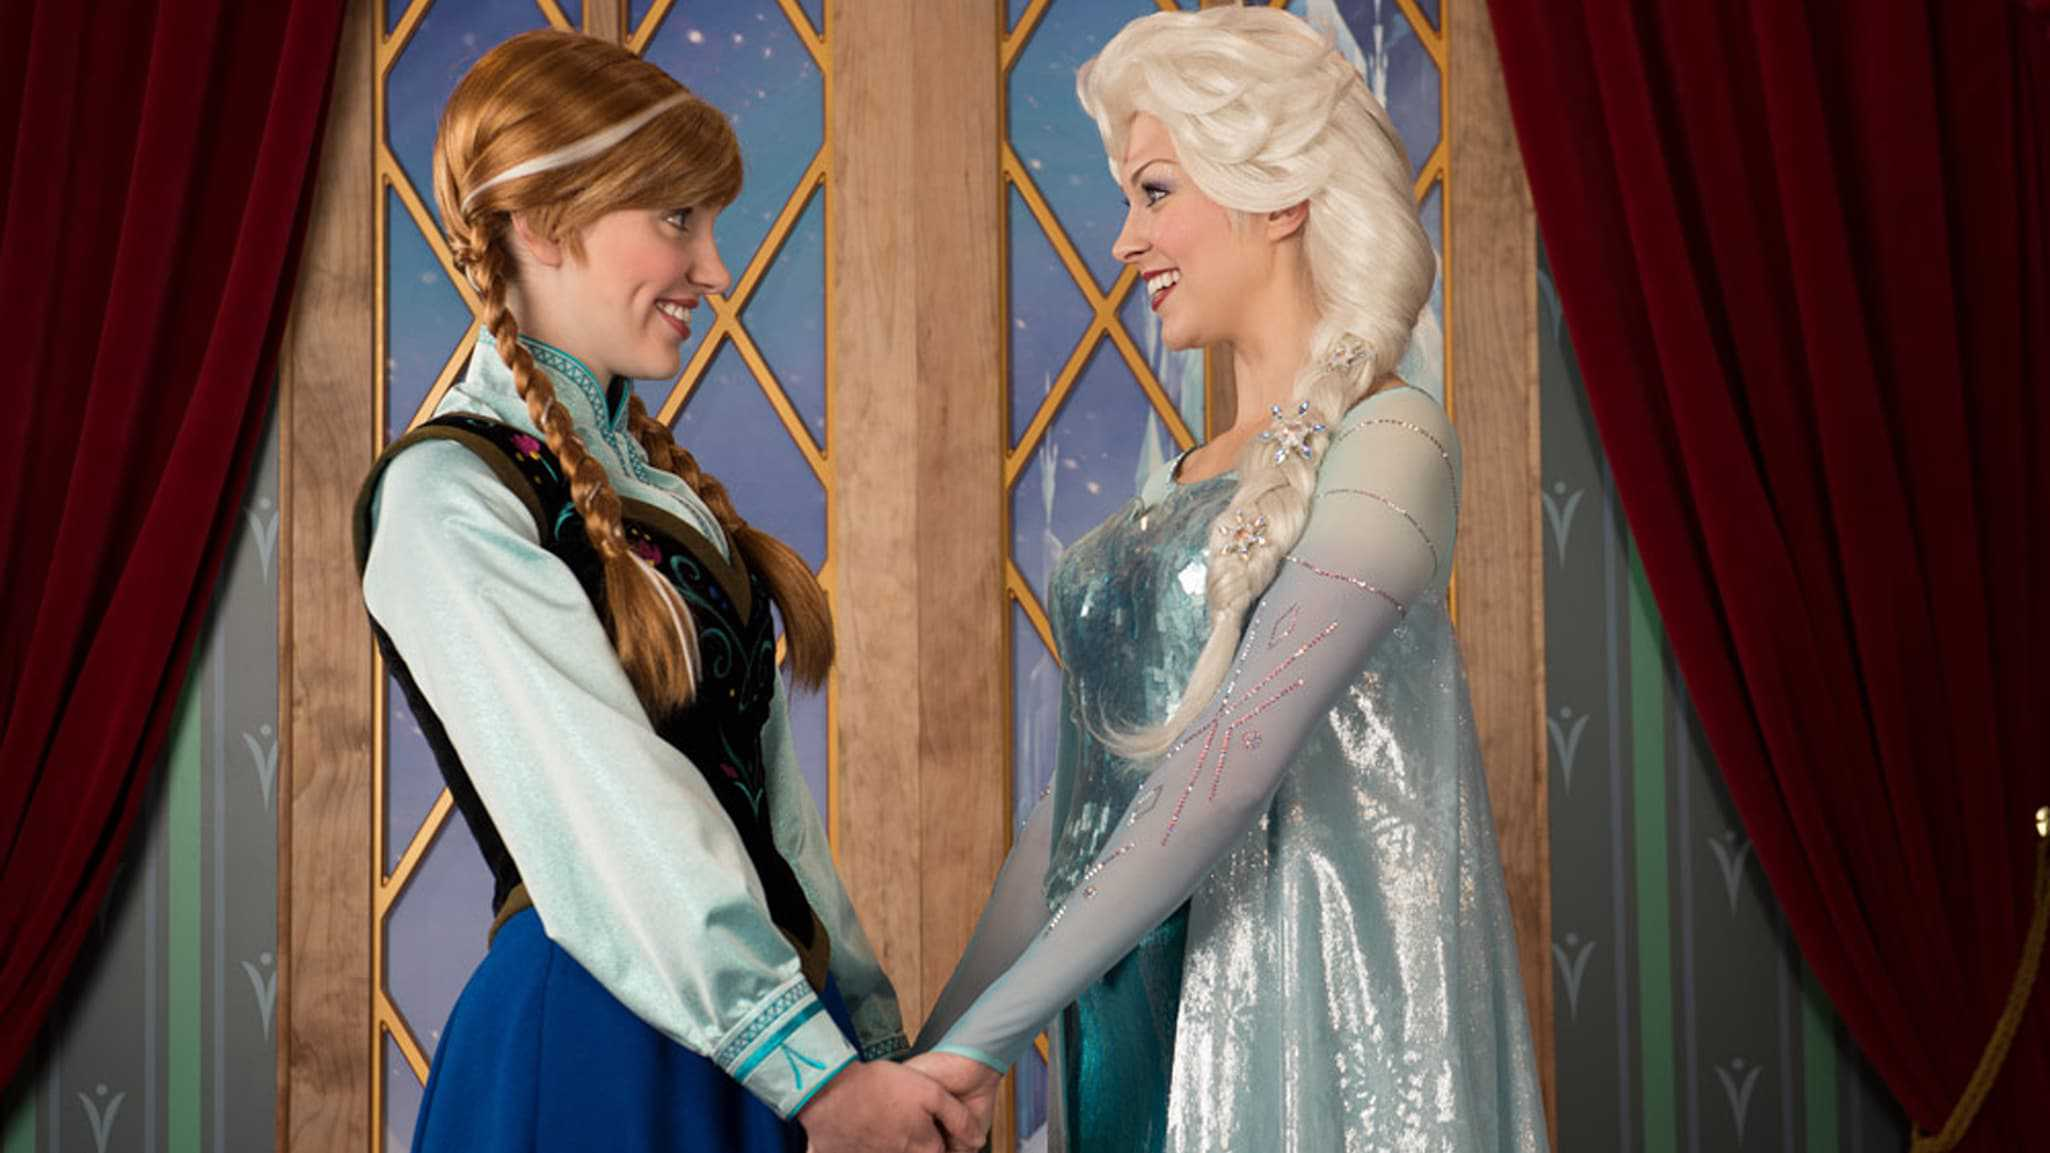 Norway – Anna & Elsa at the Royal Sommerhus (character meet)